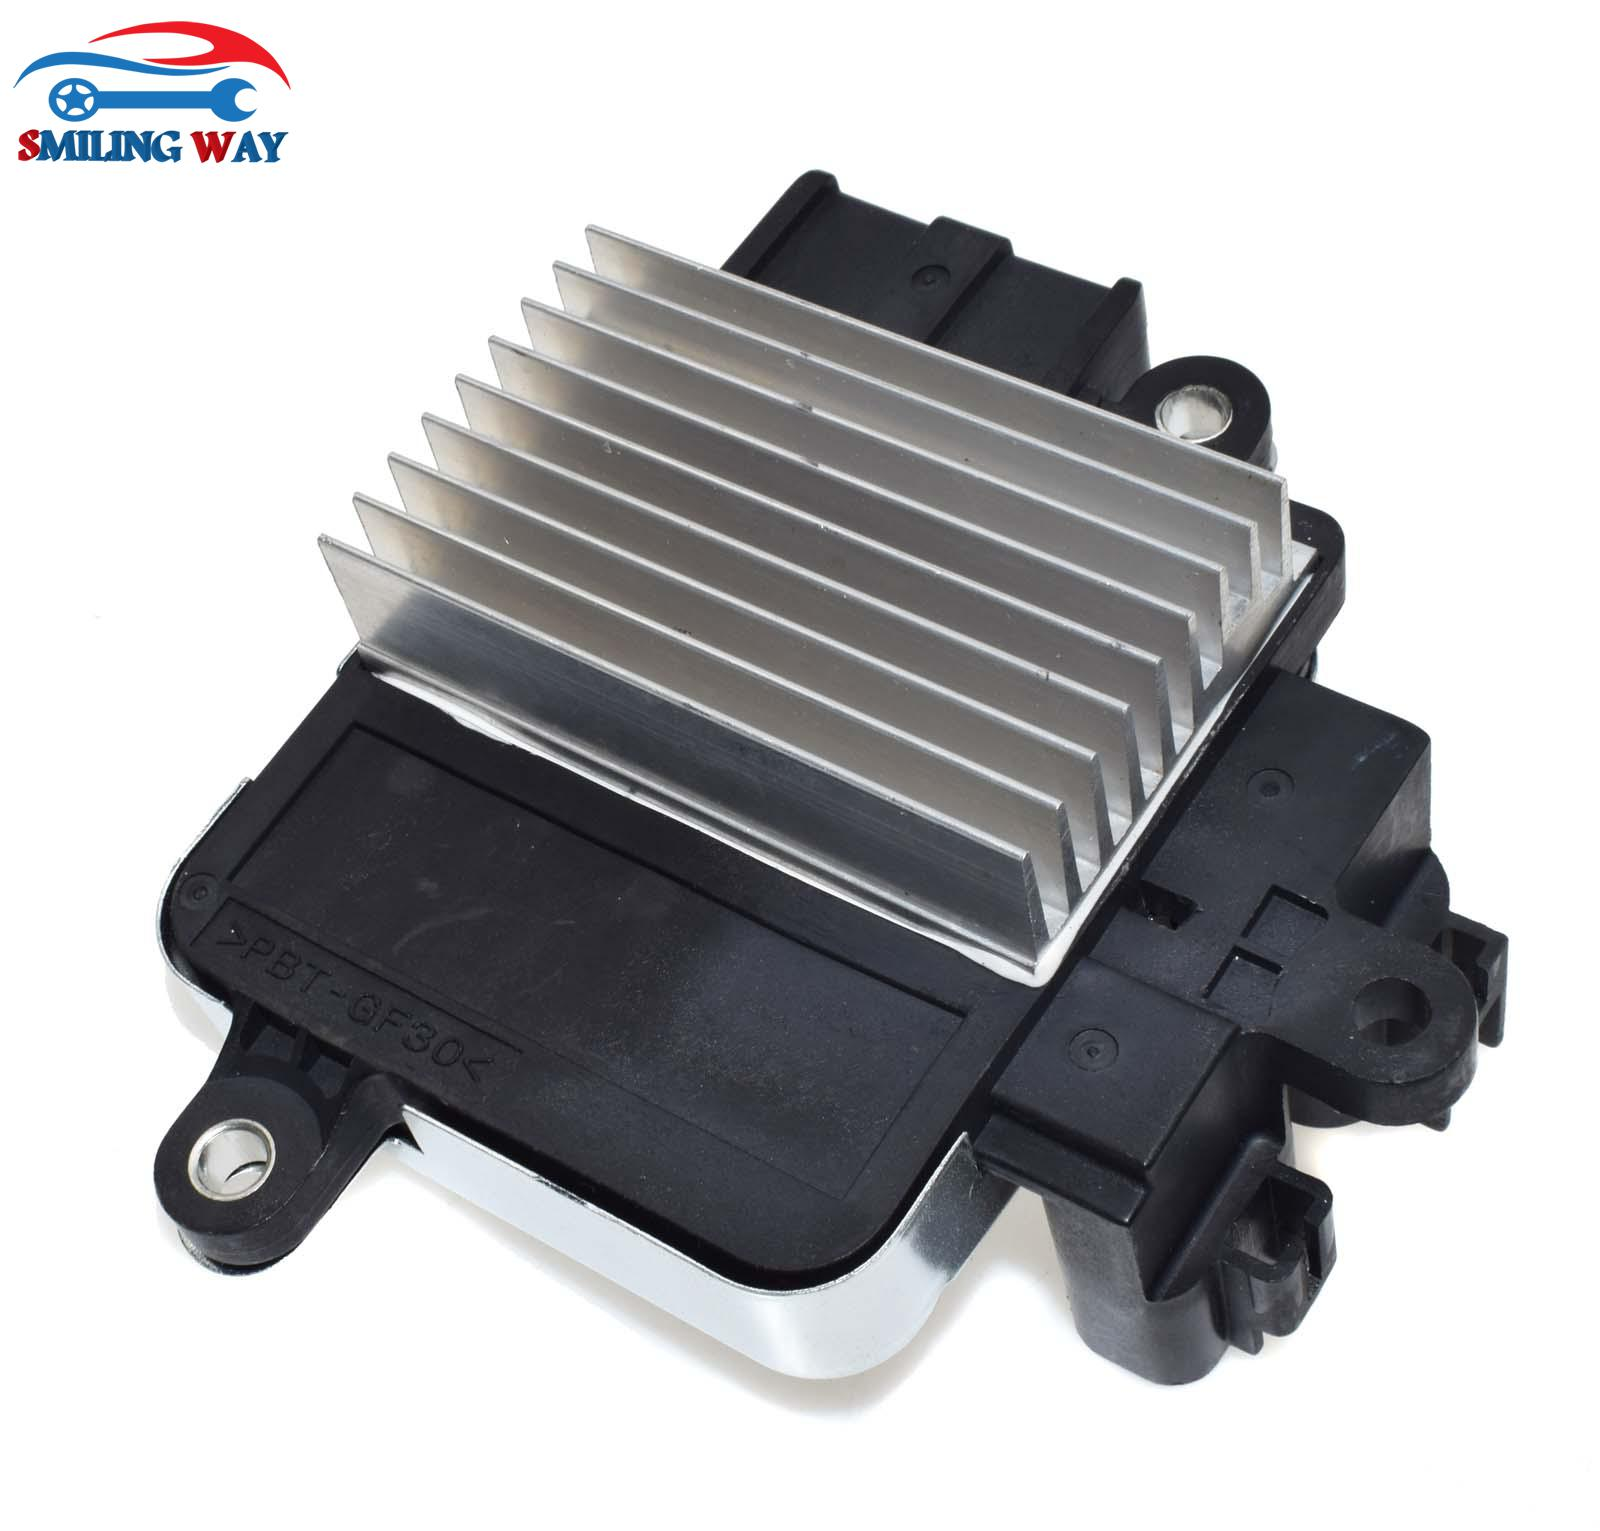 medium resolution of smiling way blower motor resistor for toyota camry highlander venza avalon rav4 sienna lexus es350 gs300 gs350 gs430 gs450h